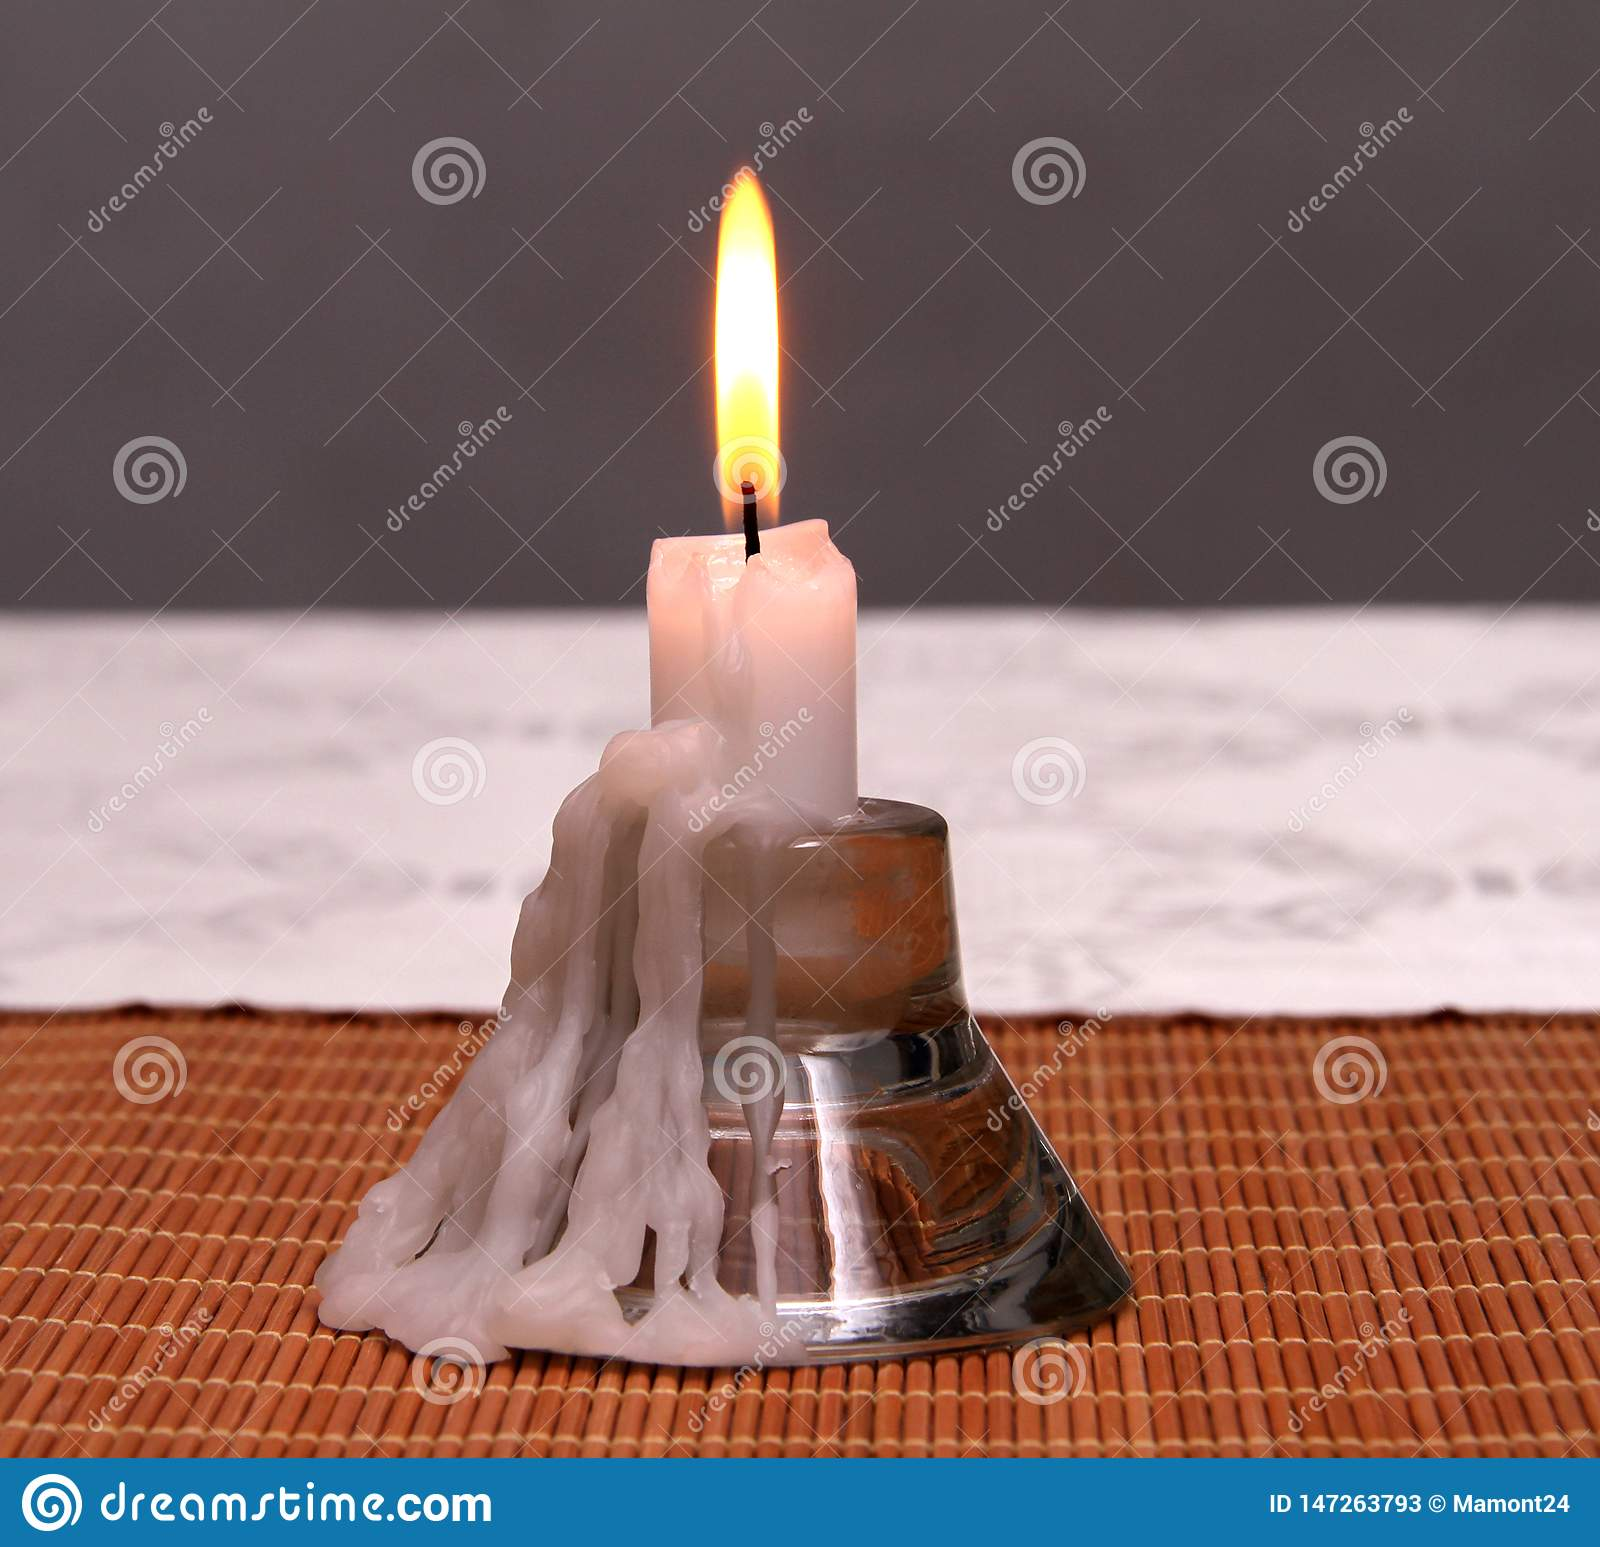 Candlestick for a candle